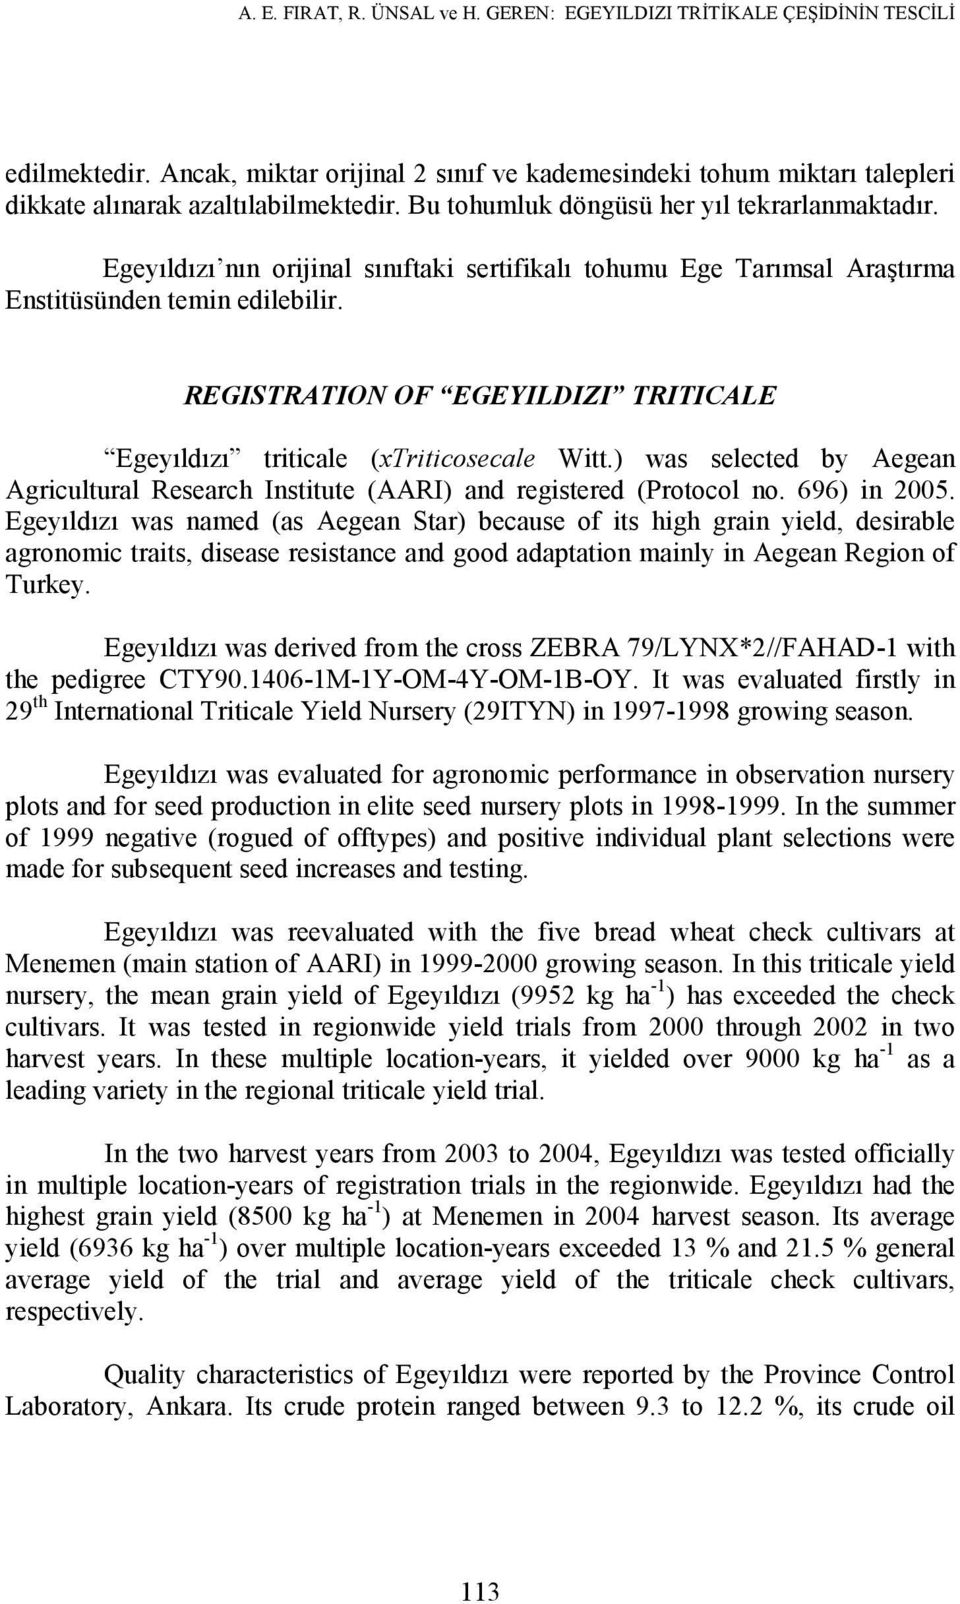 REGISTRATION OF EGEYILDIZI TRITICALE Egeyıldızı triticale (xtriticosecale Witt.) was selected by Aegean Agricultural Research Institute (AARI) and registered (Protocol no. 696) in 2005.